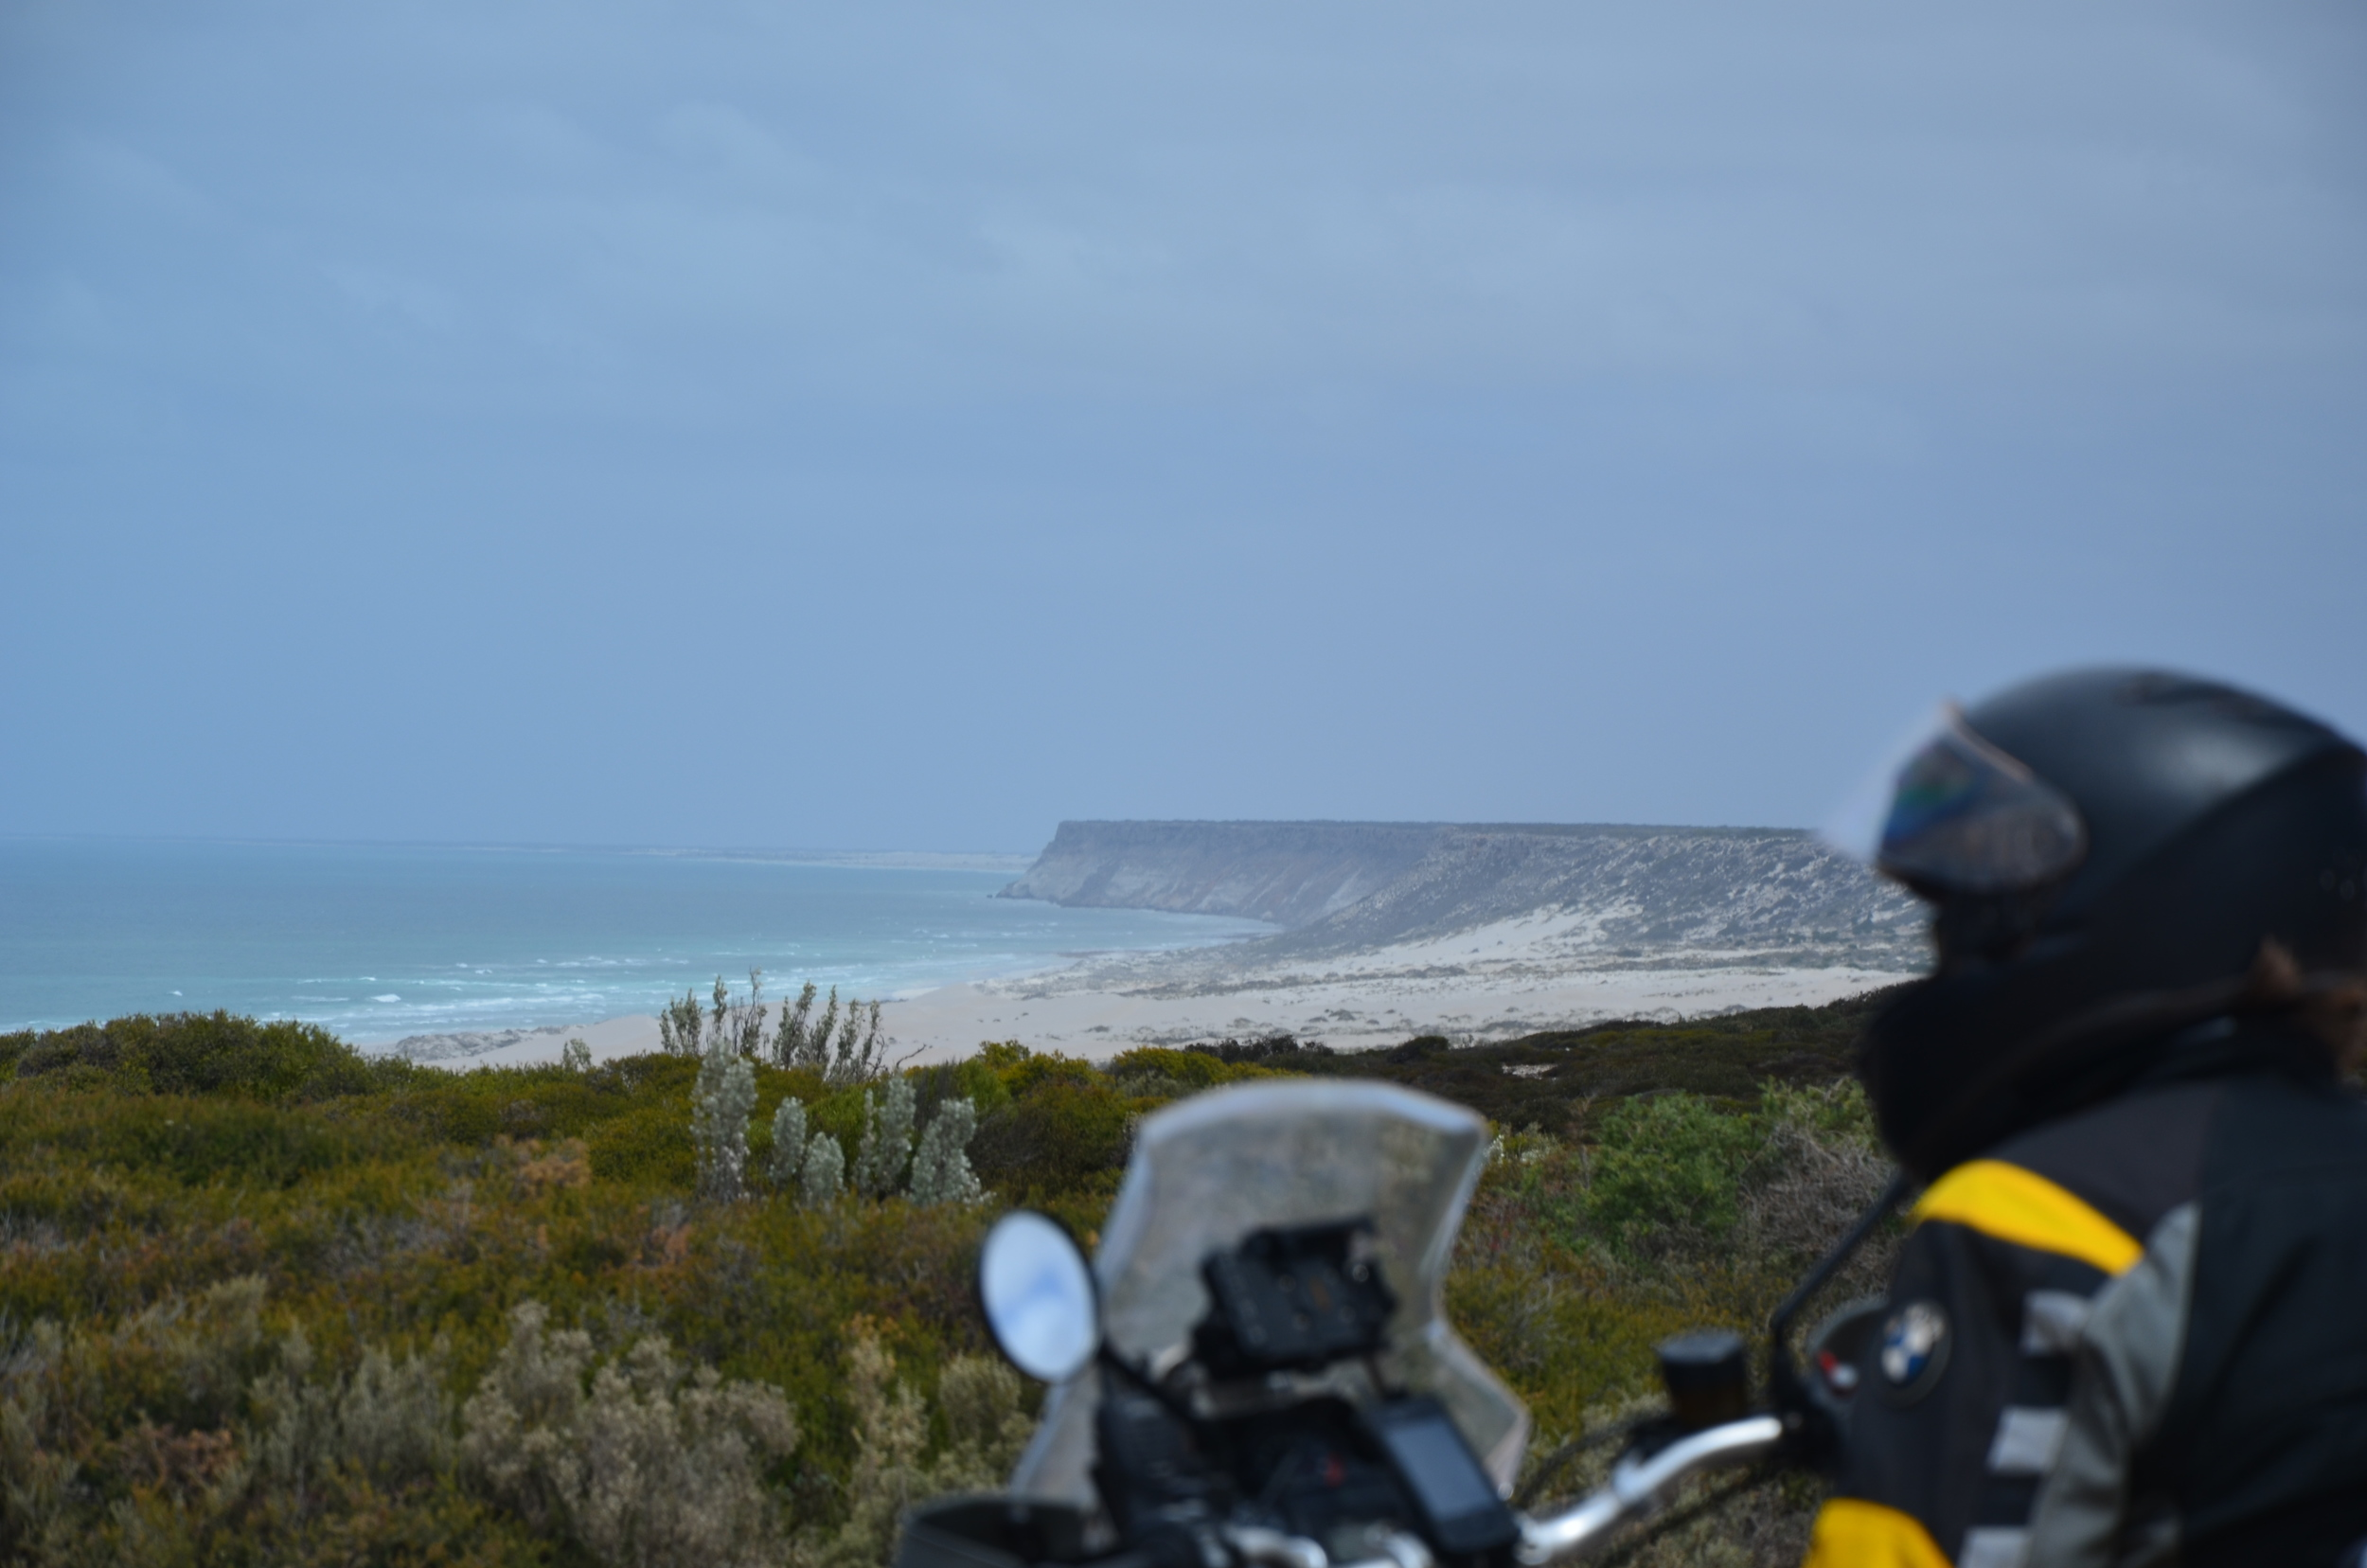 An awesome windy view of the Great Australian Bight.